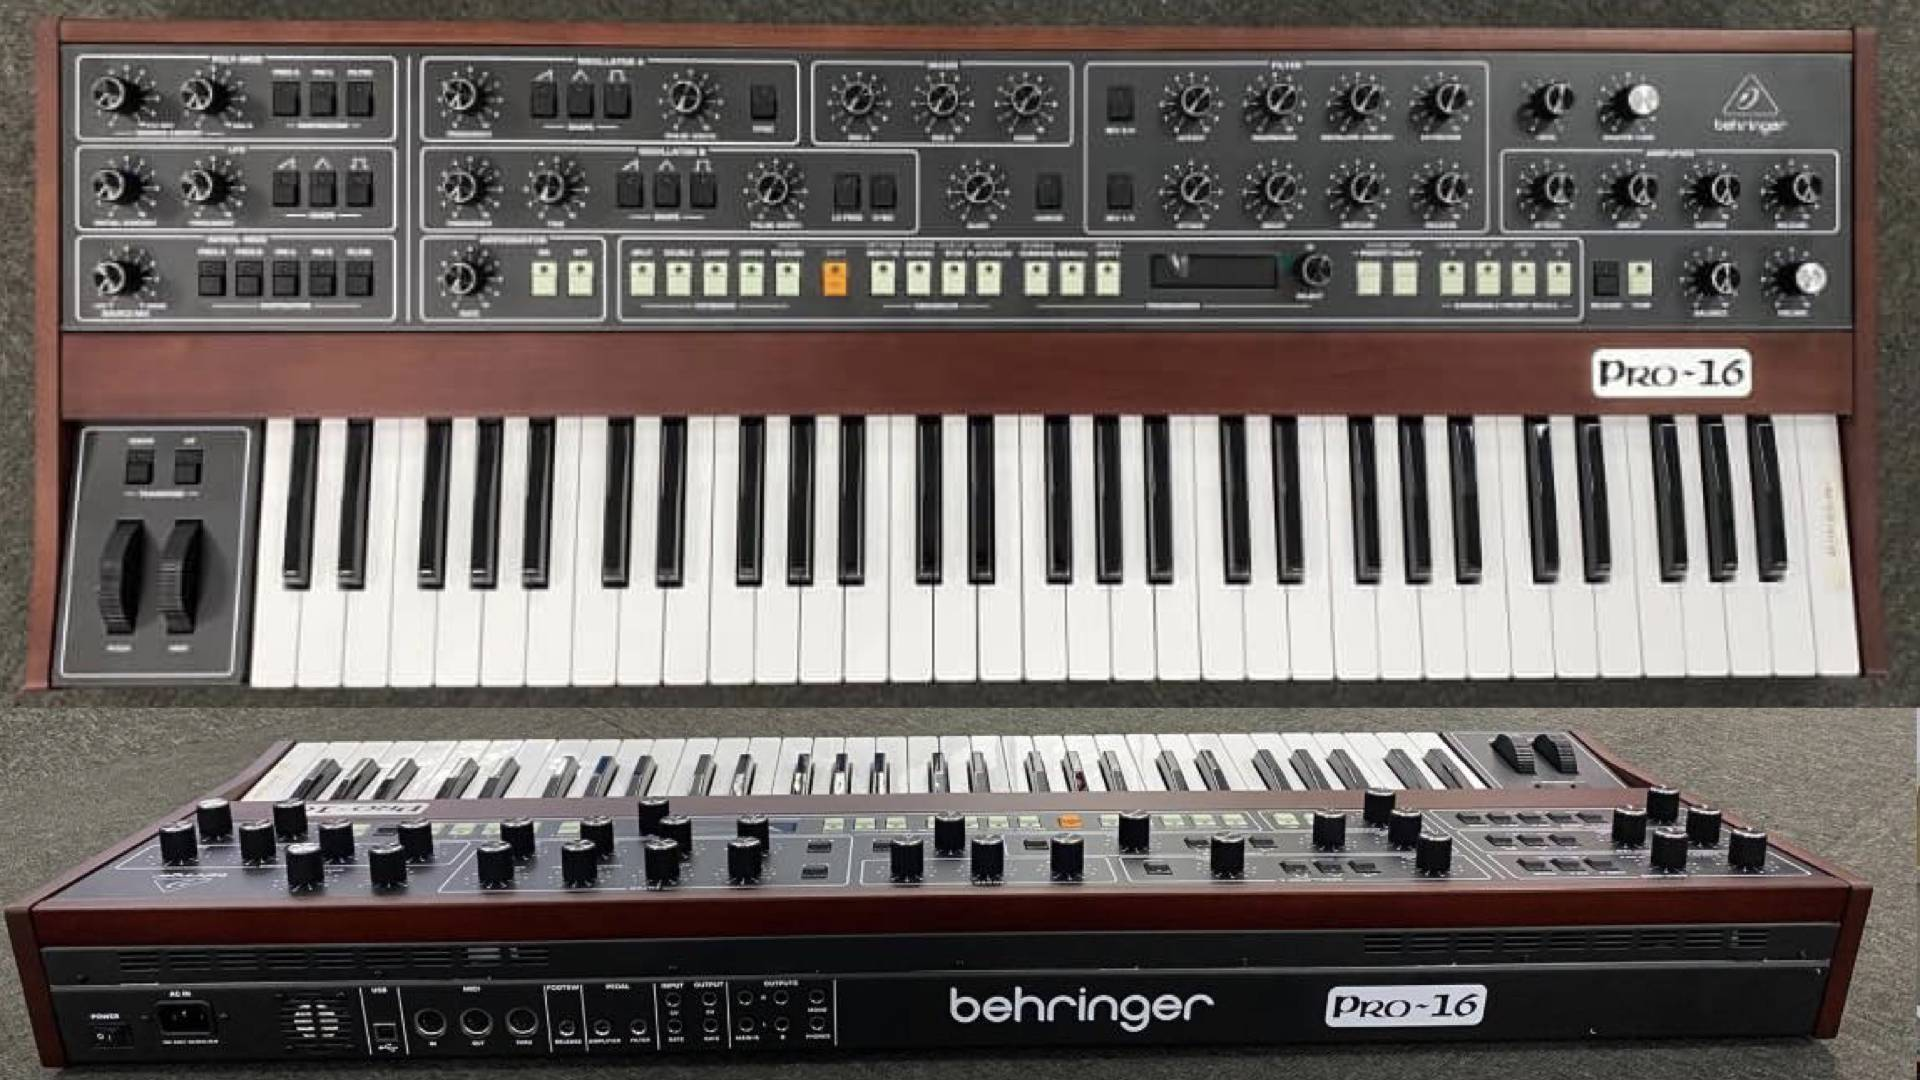 Behringer employs Sequential's Prophet synthesizer design